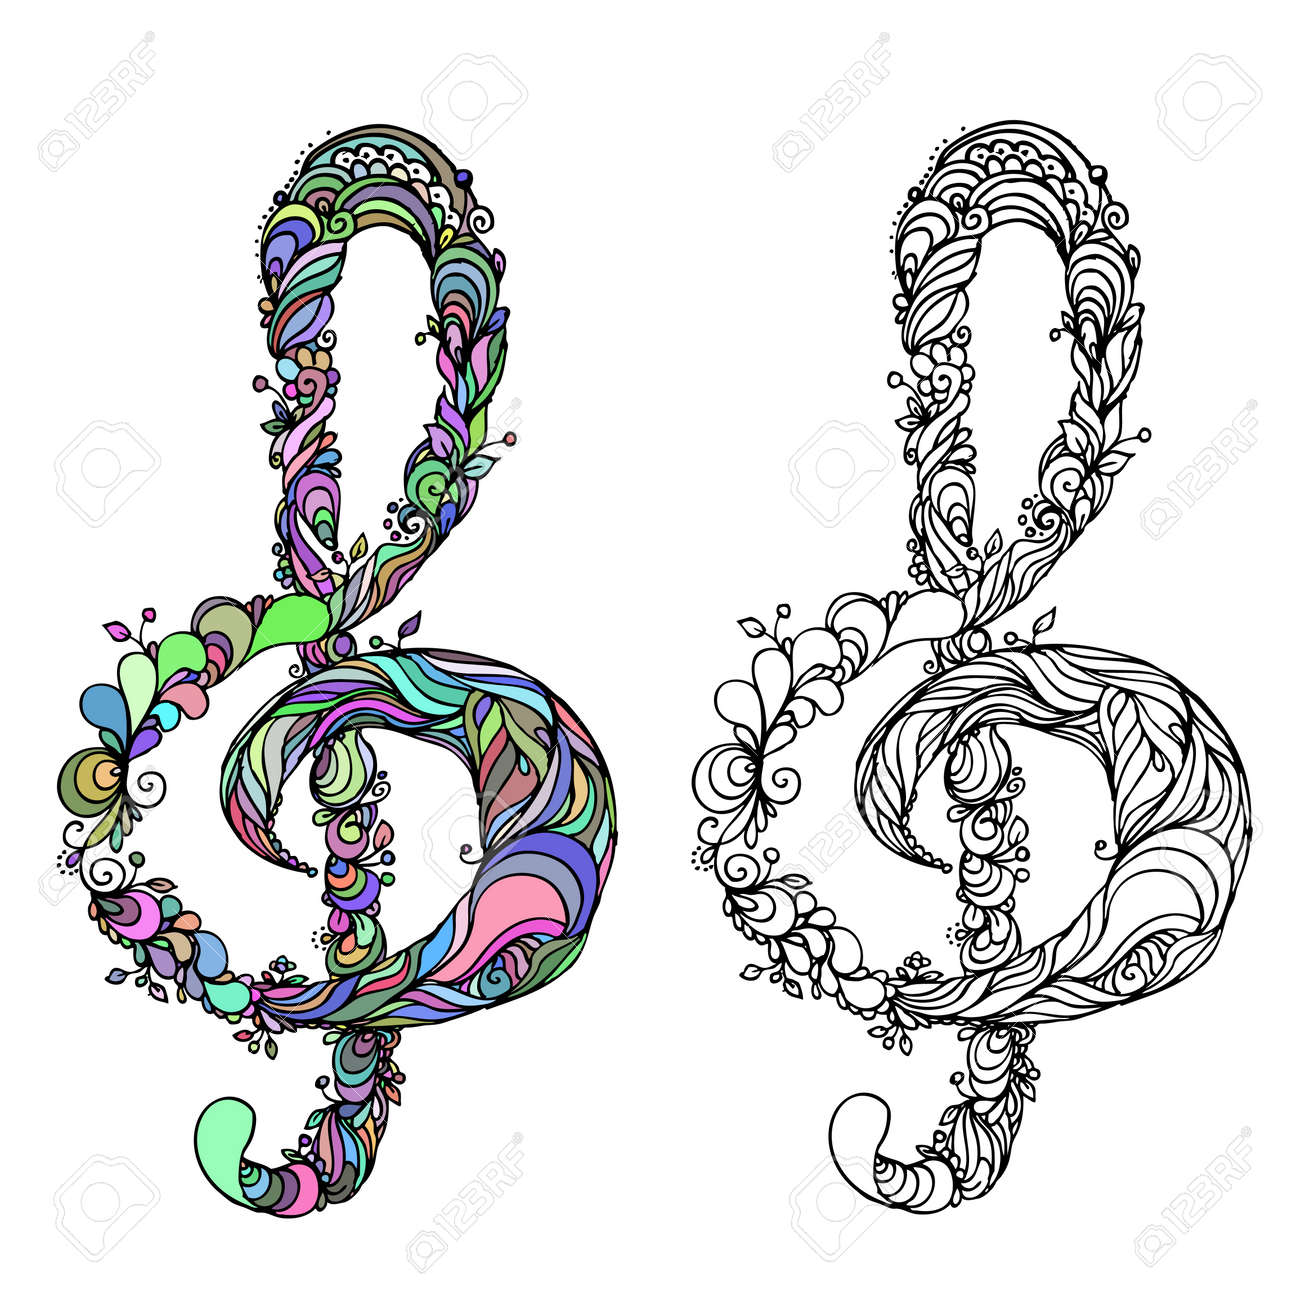 Hand Drawn Ink Doodle Treble Clef On White Background. Coloring ...